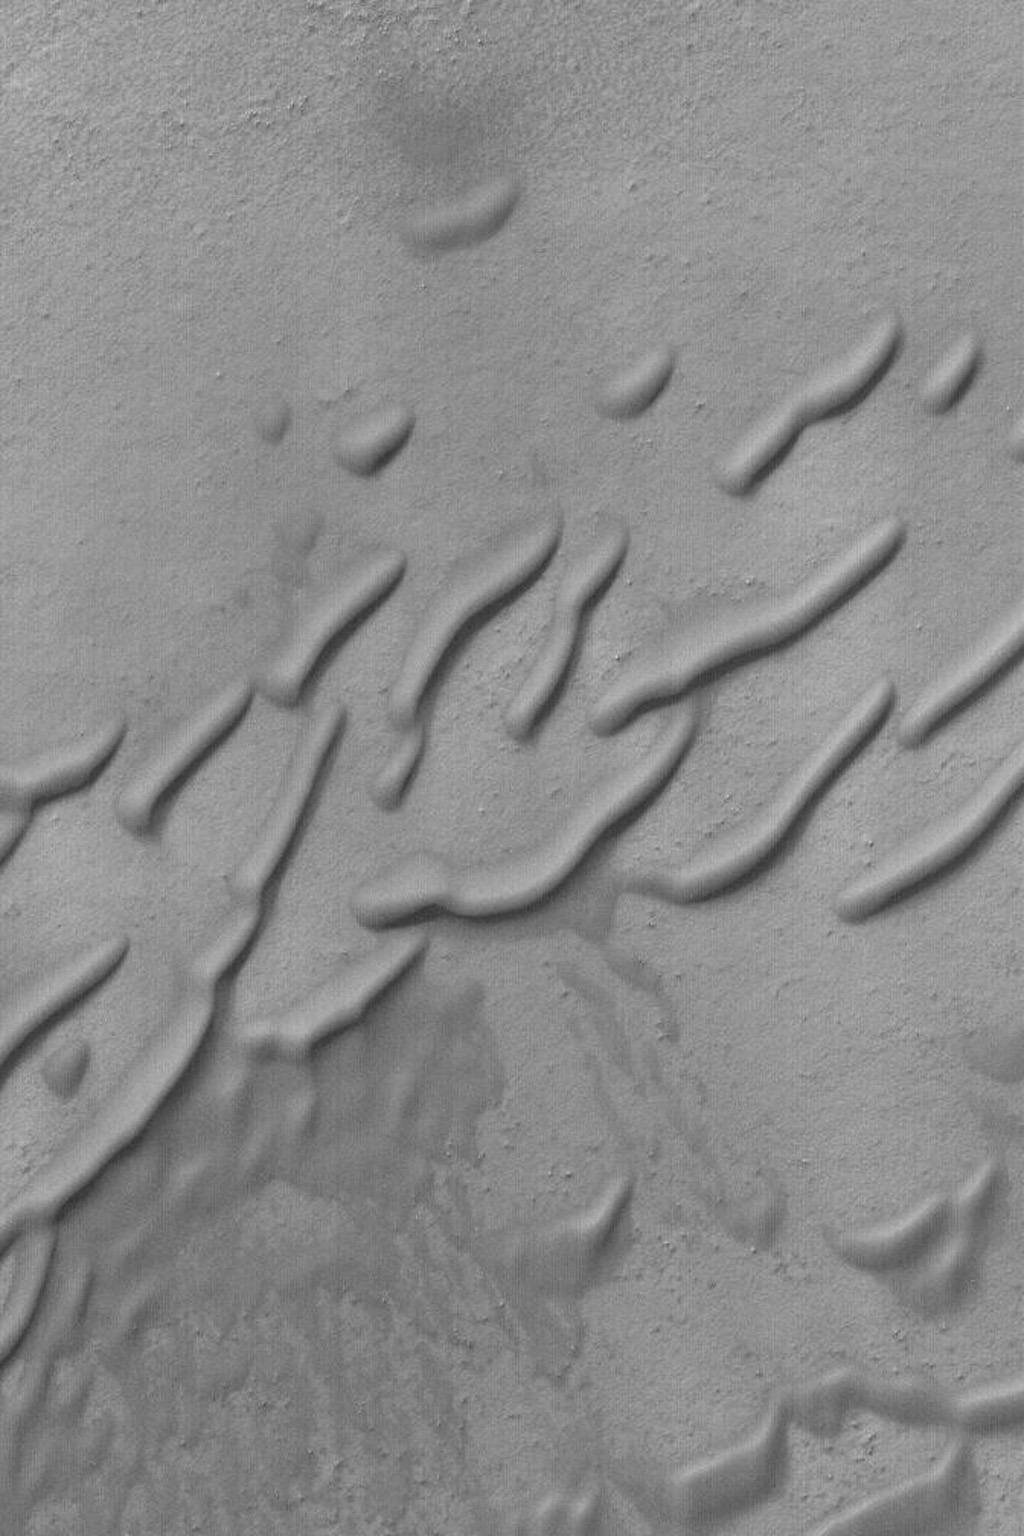 NASA's Mars Global Surveyor shows some of the rounded, wind-eroded sand dune features in a crater in the southern hemisphere of Mars. For such rounding to occur, the dune sand might need to be somewhat cemented.